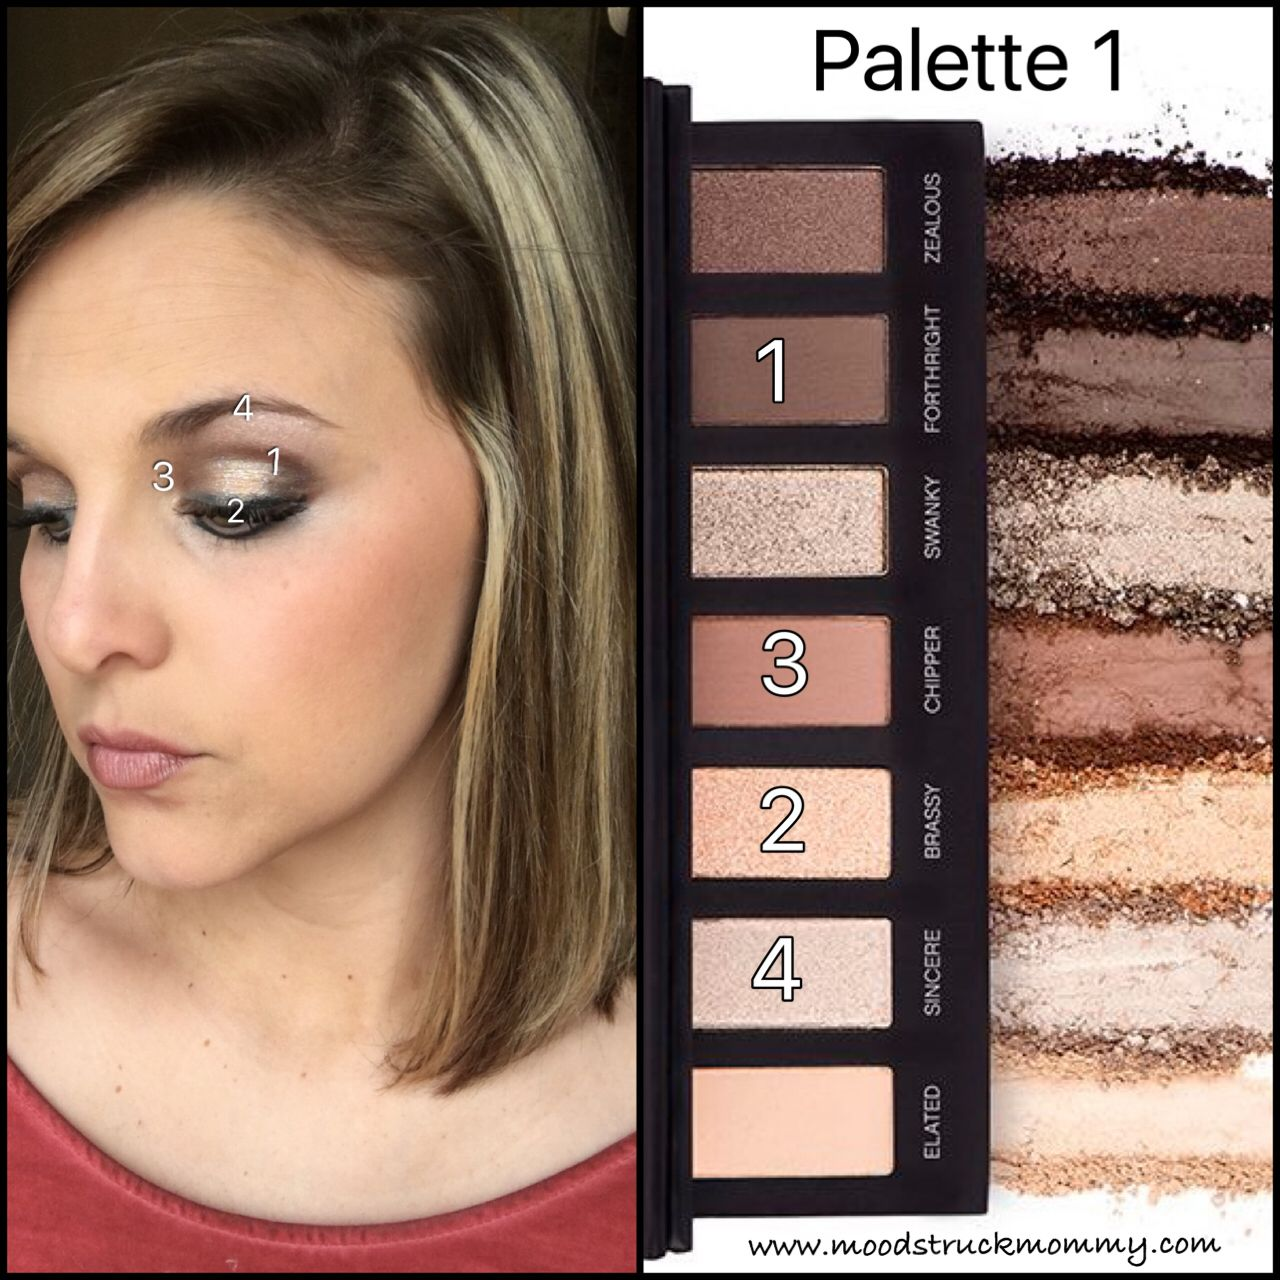 Addiction Palette 1 Get Yours Here Www Moodstruckmommy Com